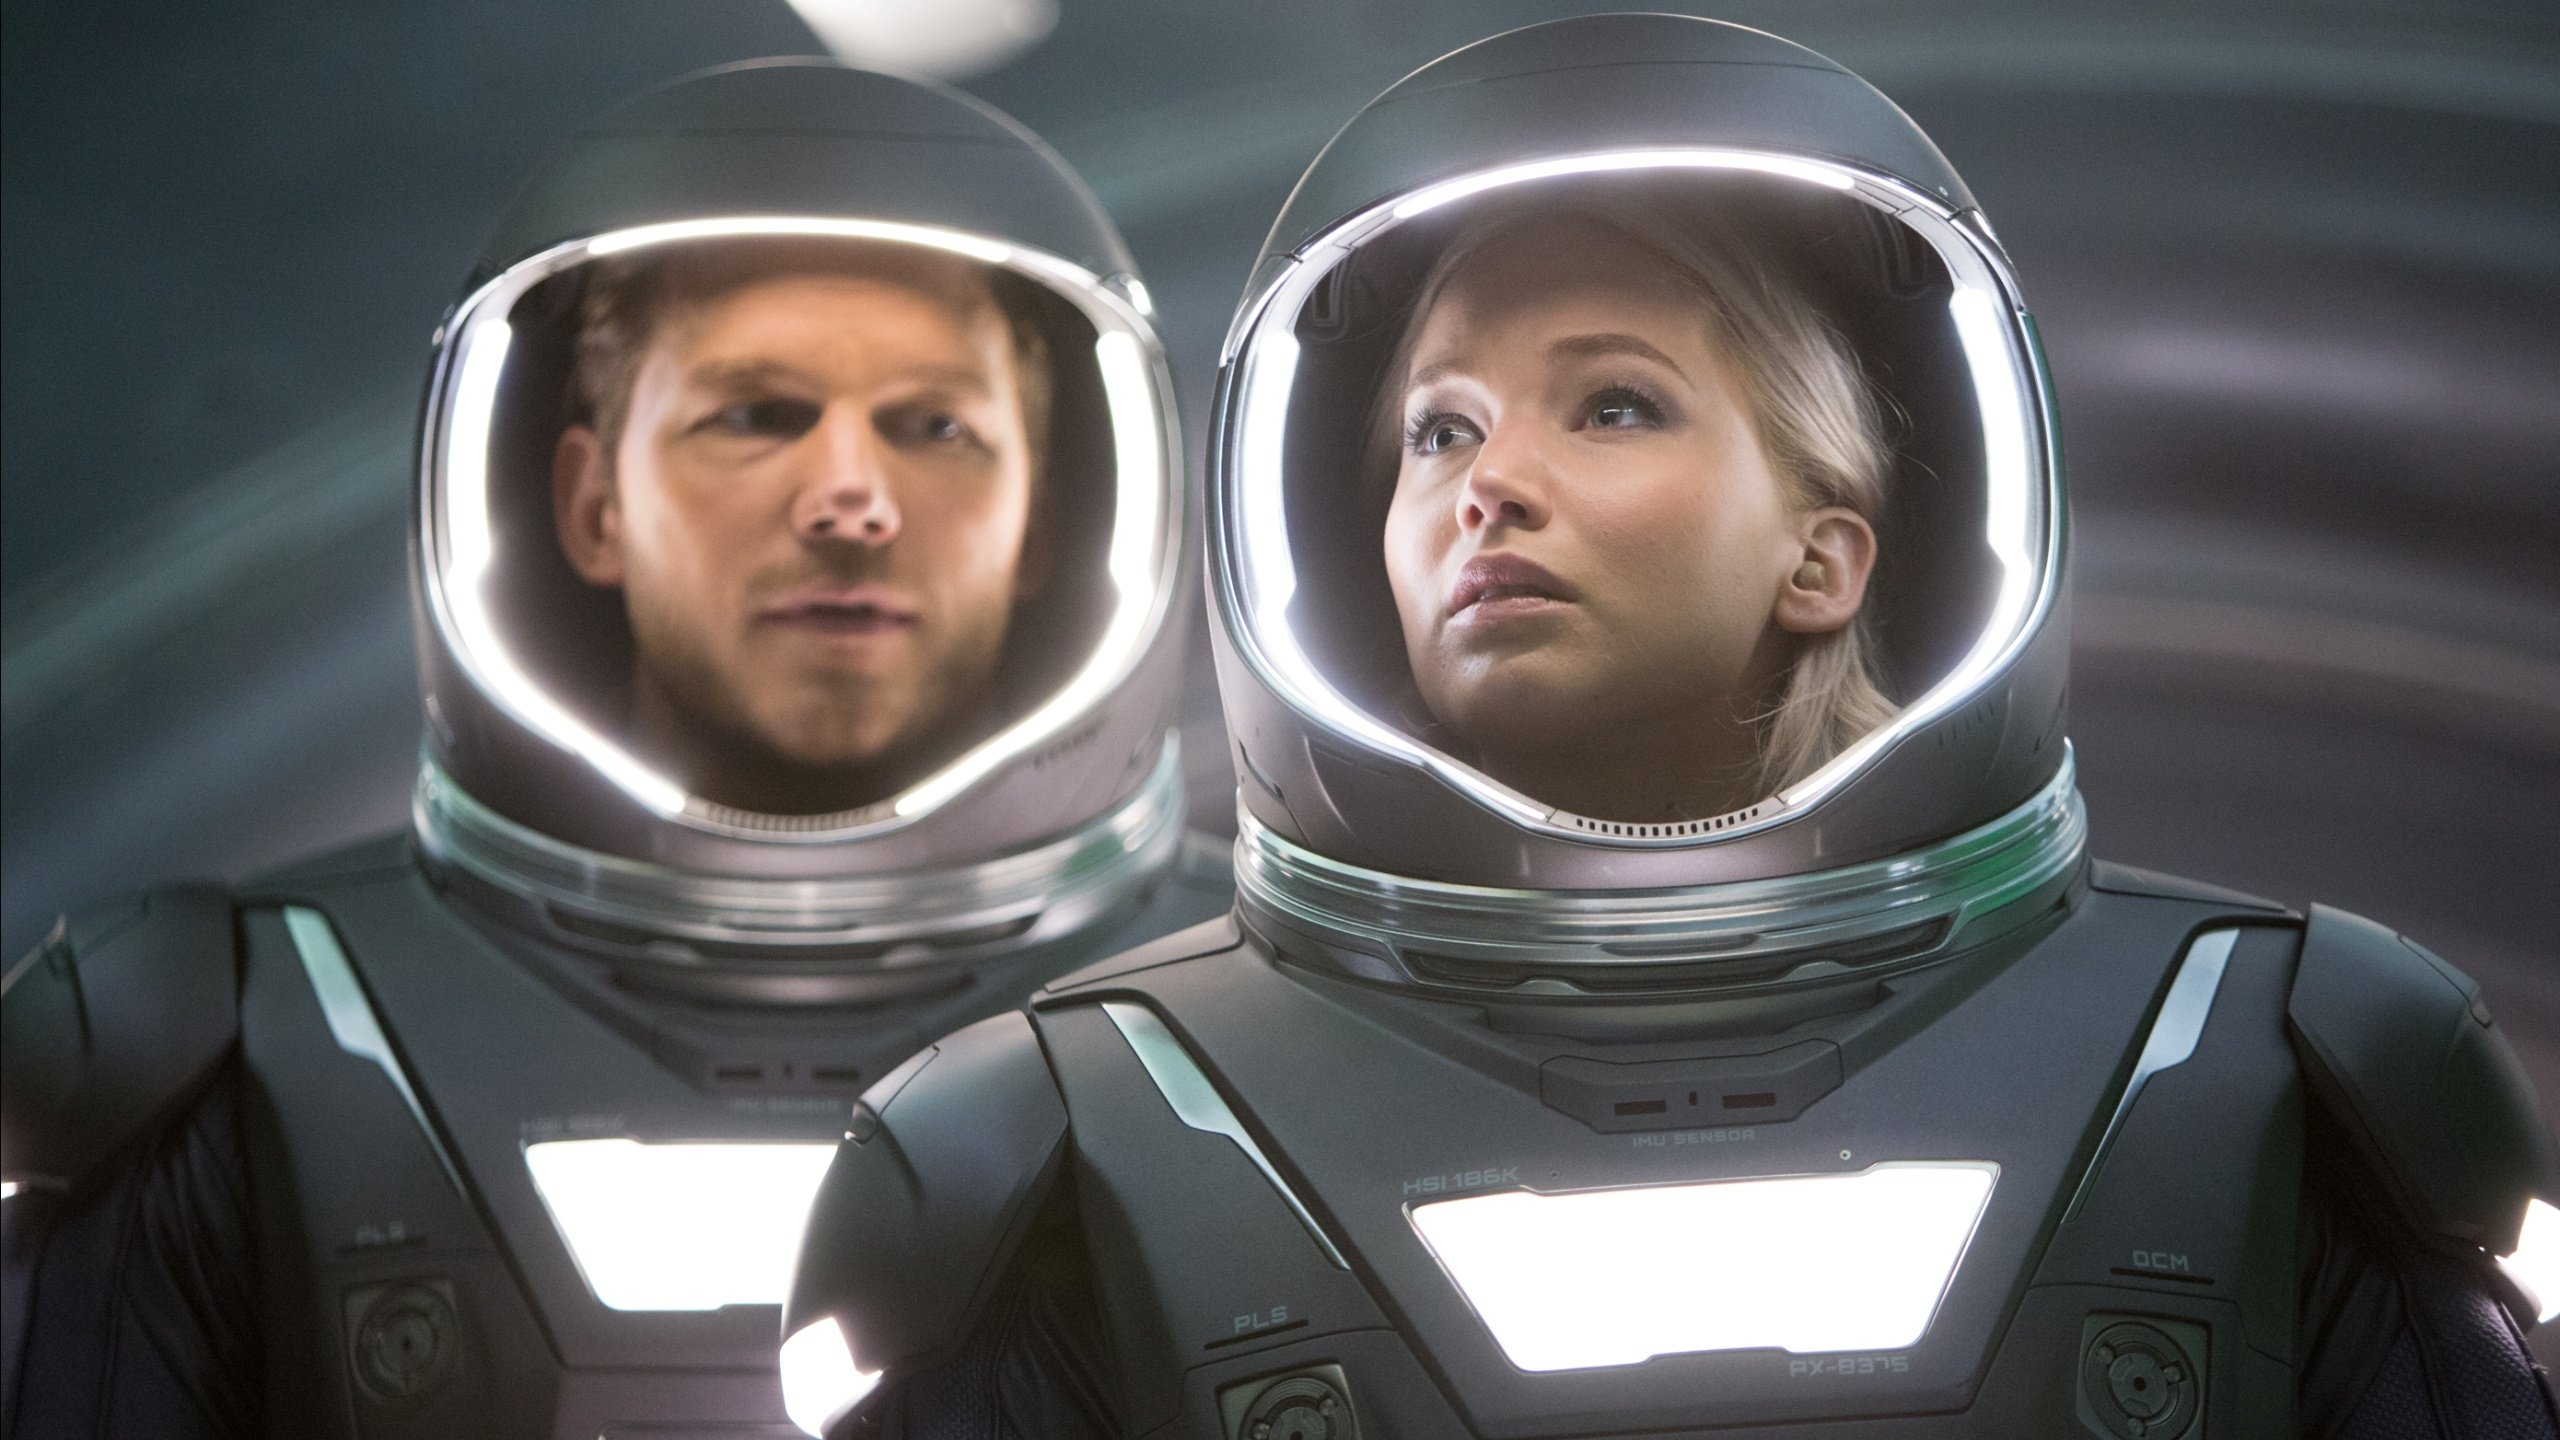 passengers-2560x1440-chris-pratt-jennifer-lawrence-james-preston-4272